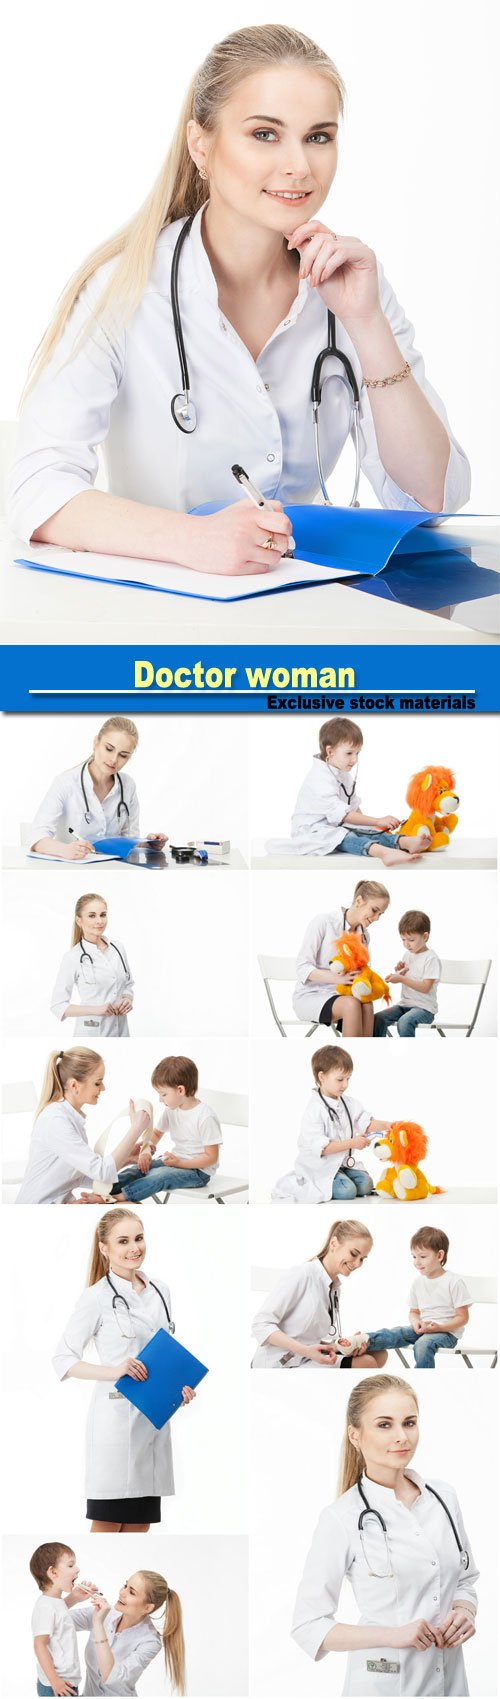 Doctor woman and child patient